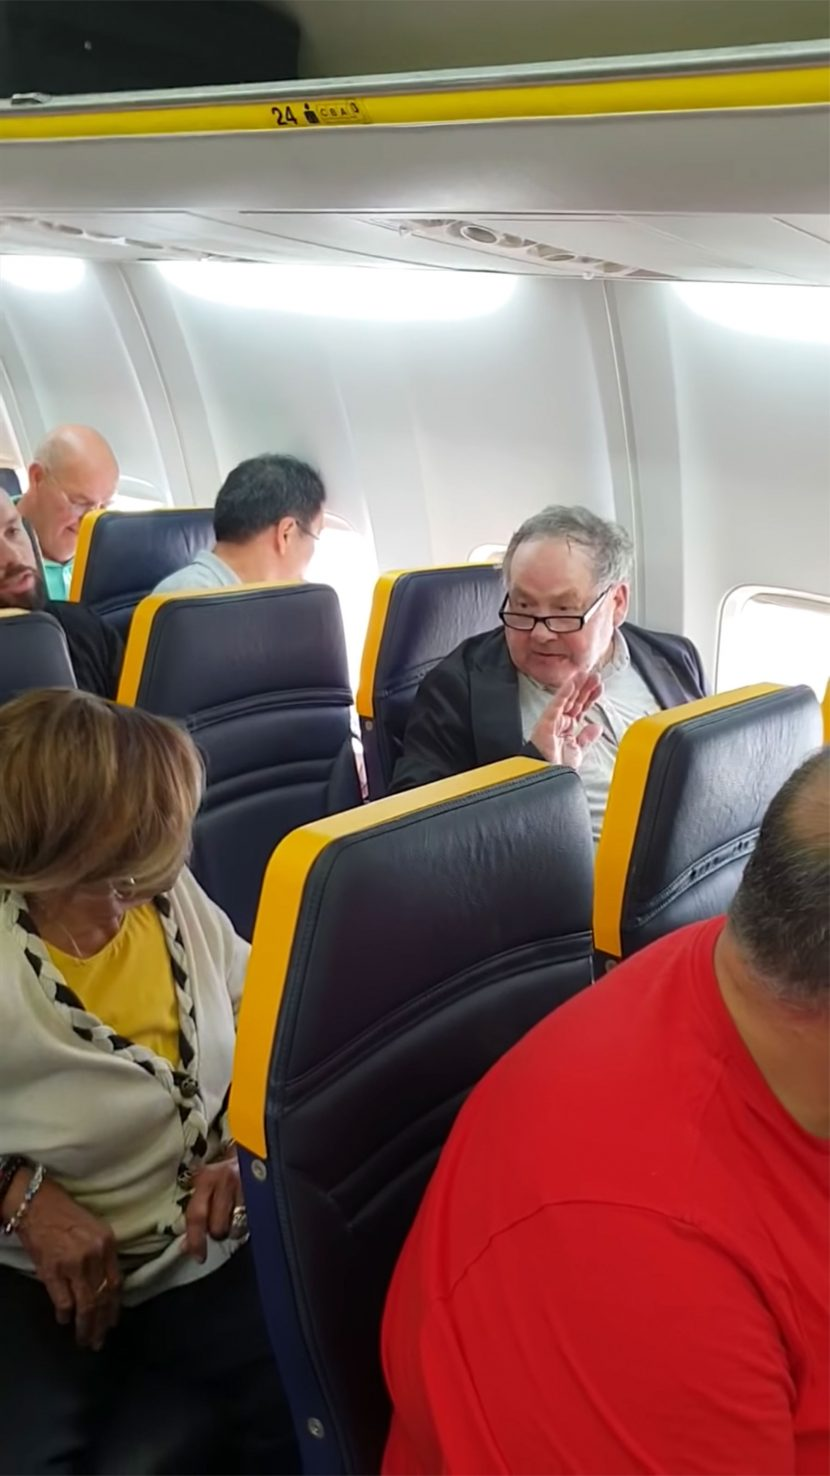 Ryanair Under Fire After Man Who Went on Racist Rant Against Fellow Passenger Goes Unpunished